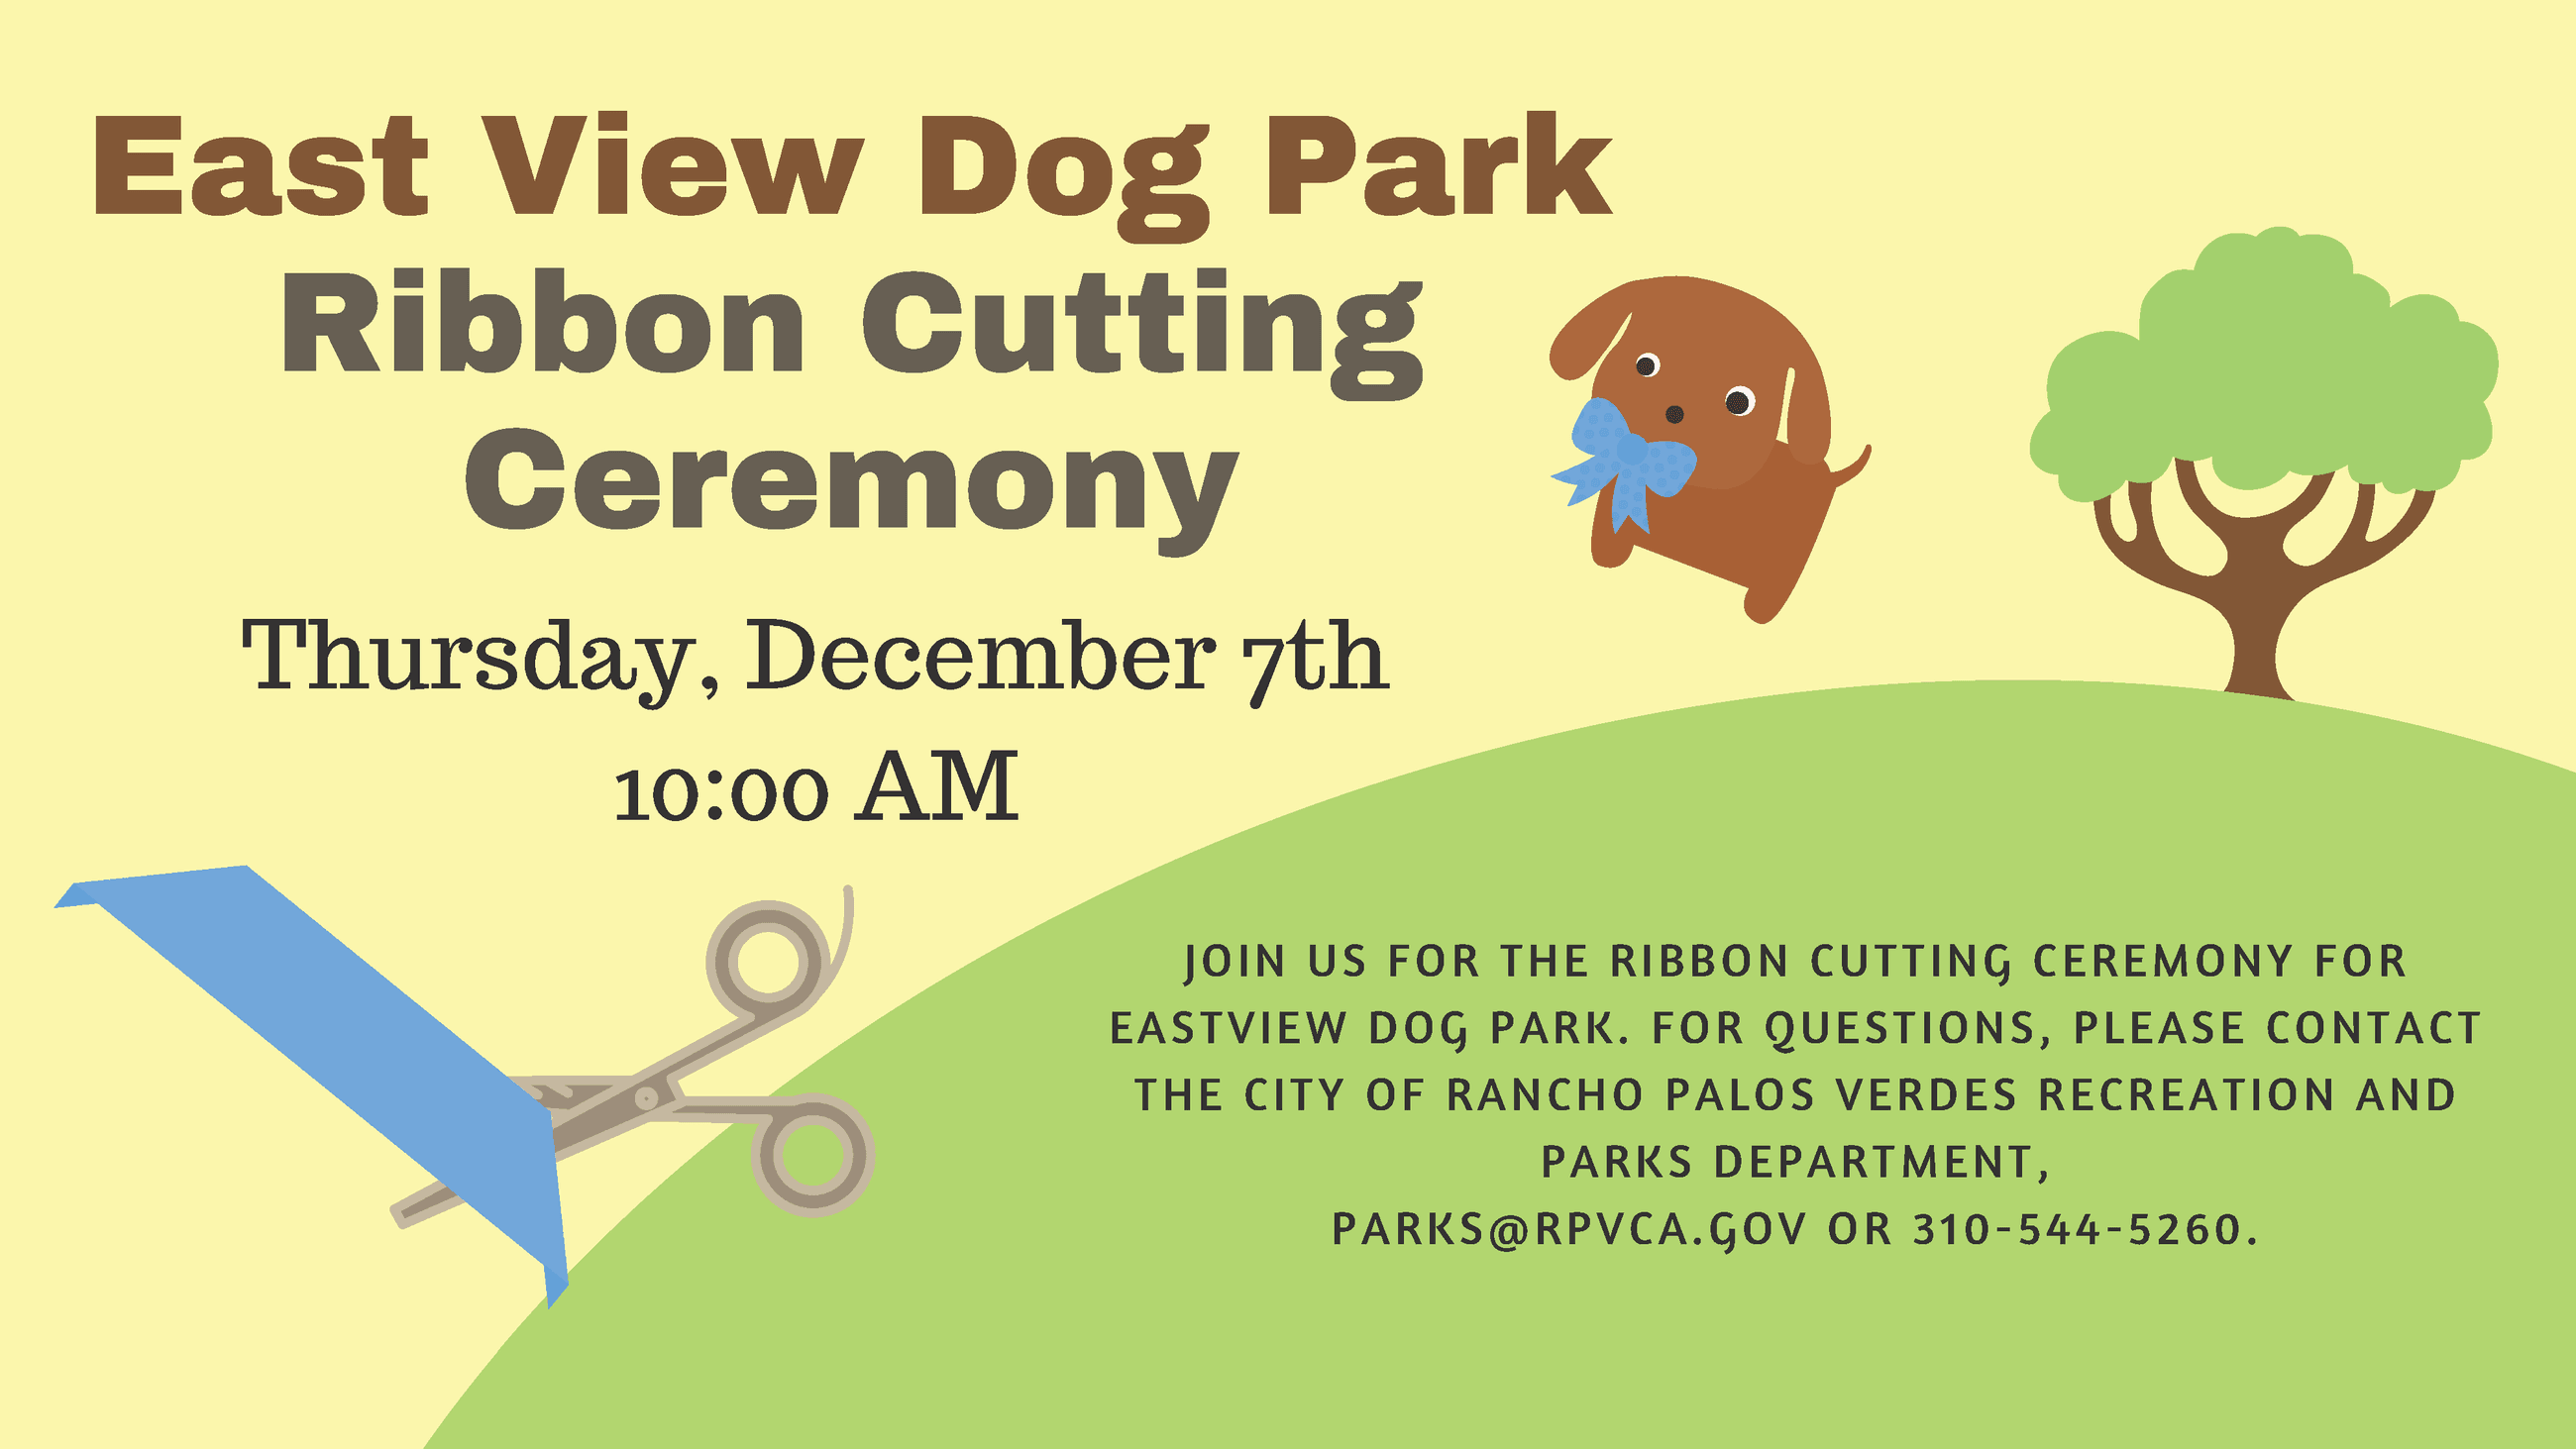 Eastview Dog Park Ribbon Cutting Ceremony